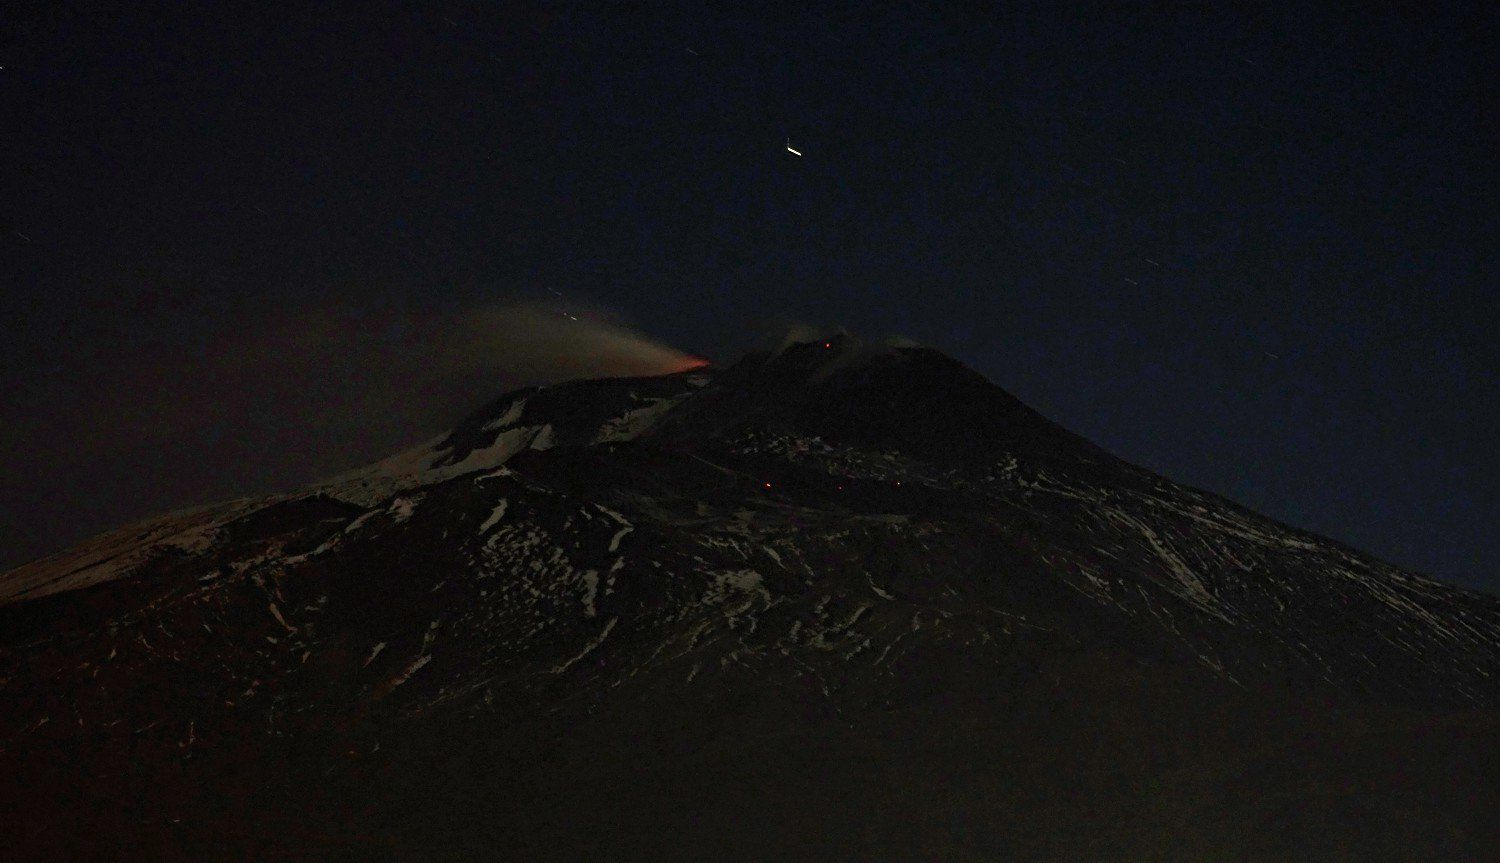 Etna 11.04.2017 - Only a weak incandescence at the Voragine and some glow on the lava flow illustrate the night activity - photo Boris Behncke